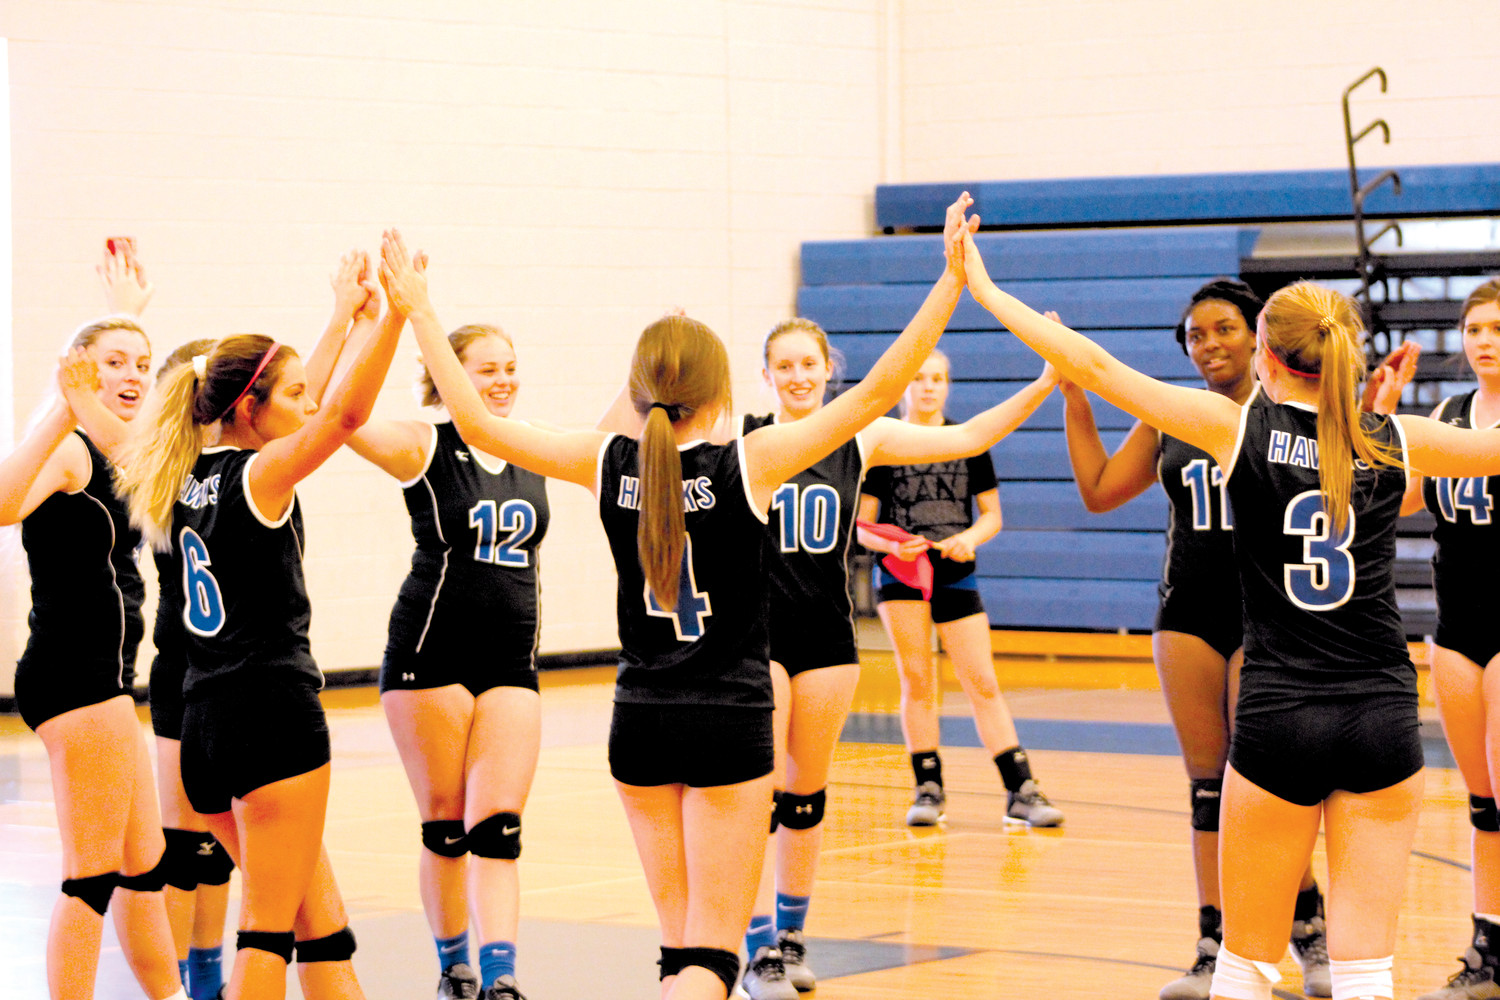 Triton's volleyball team celebrates their victory over Midway, 3-2, Monday night.